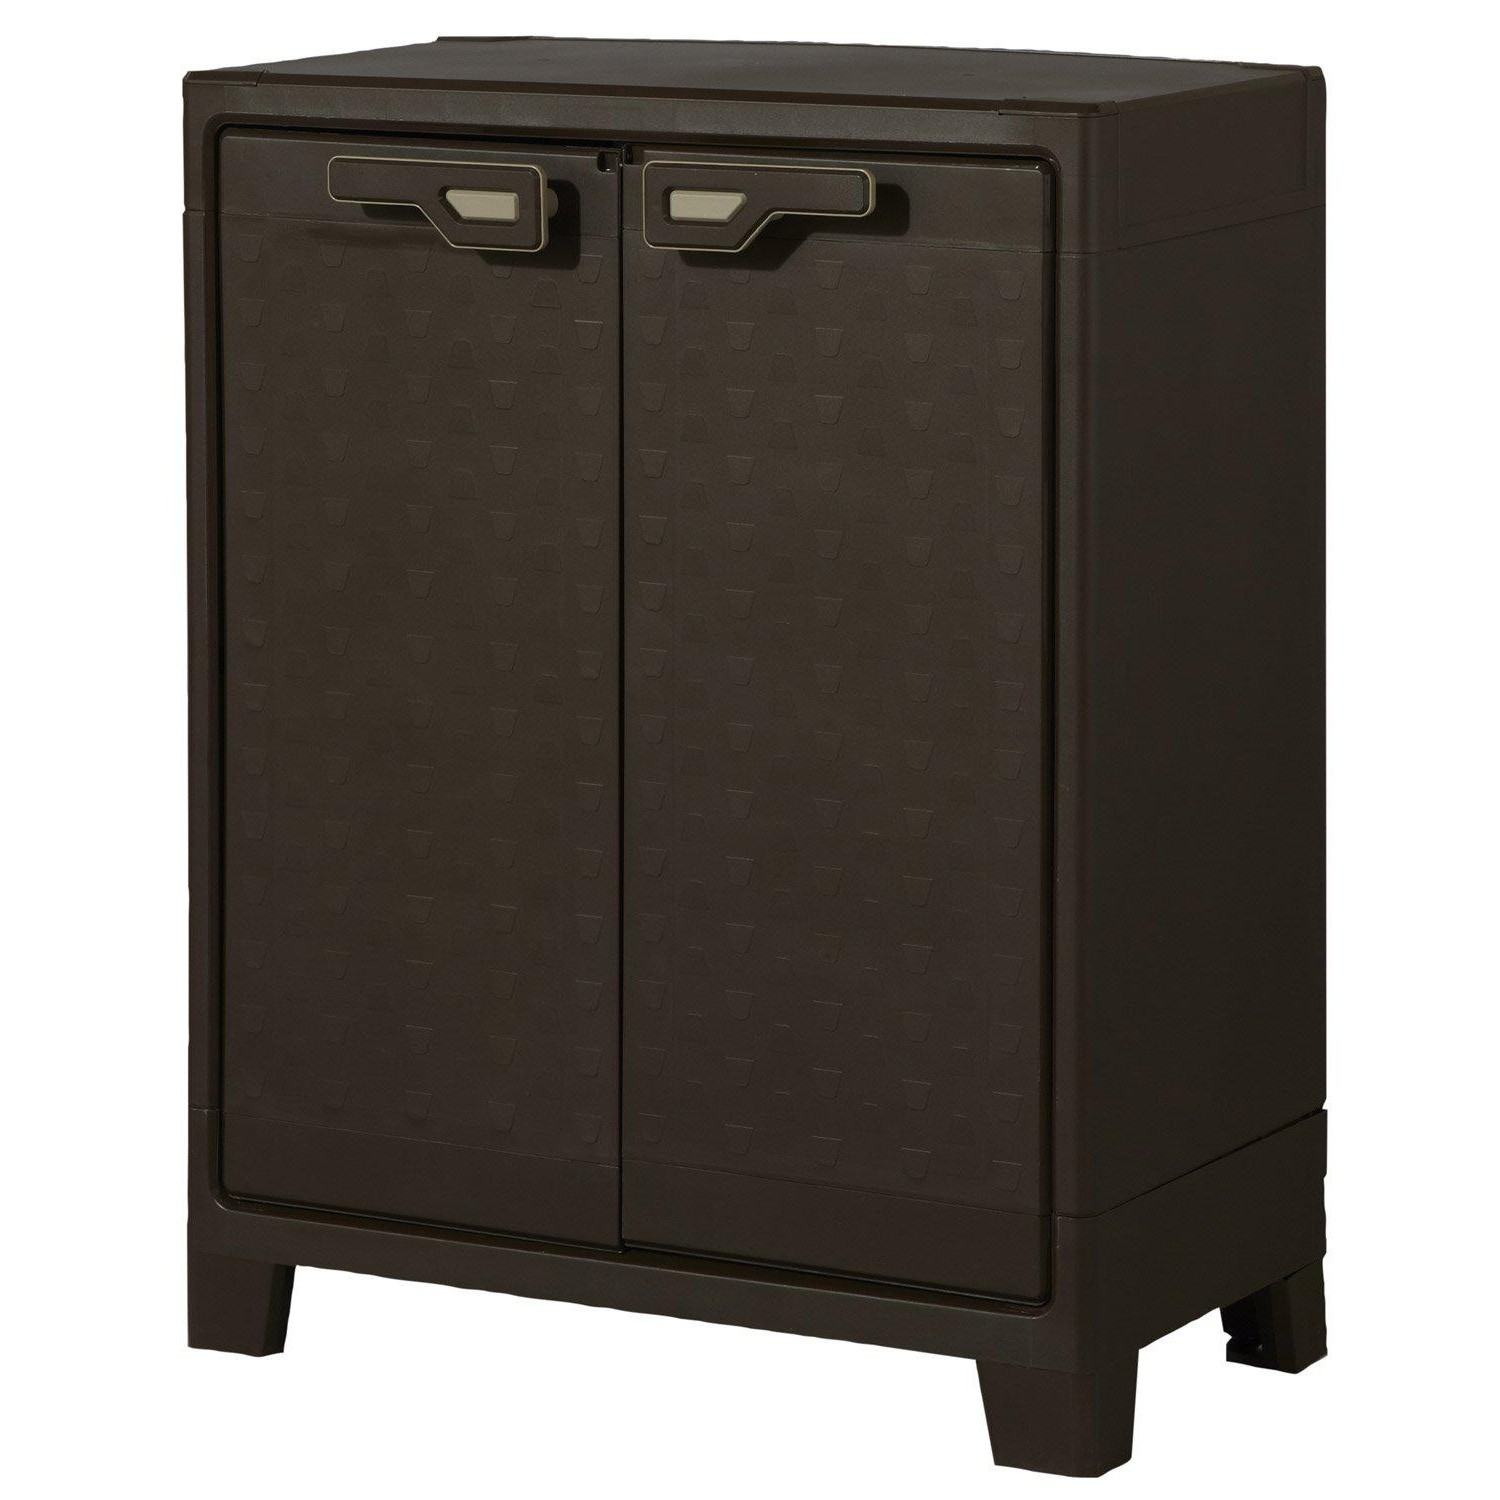 armoires de toilettes leroy merlin agrable meuble toilette leroy merlin ikea salle de bain. Black Bedroom Furniture Sets. Home Design Ideas